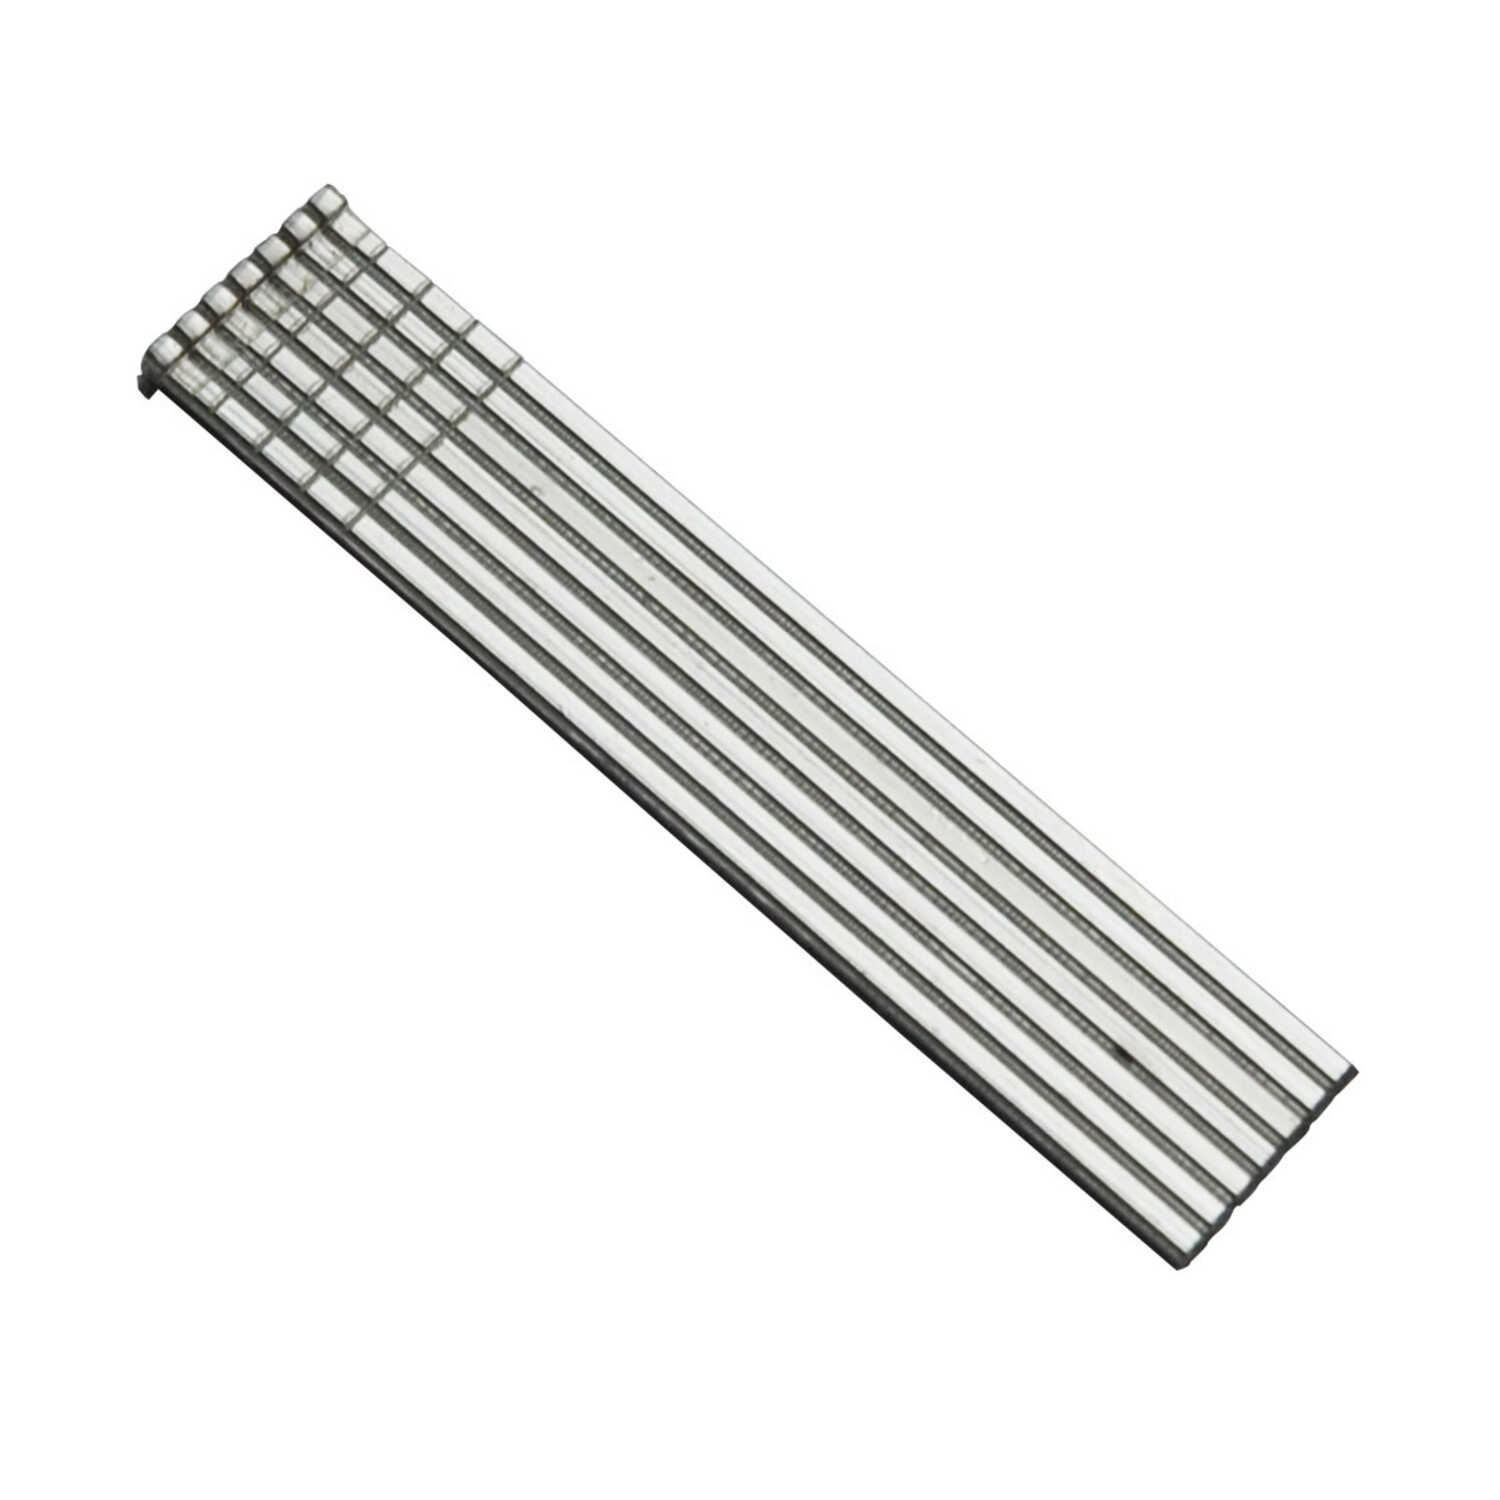 Grip-Rite  18 Ga. Smooth Shank  Straight Strip  Brad Nails  1-3/4 in. L x 0.05 in. Dia. 5000 count